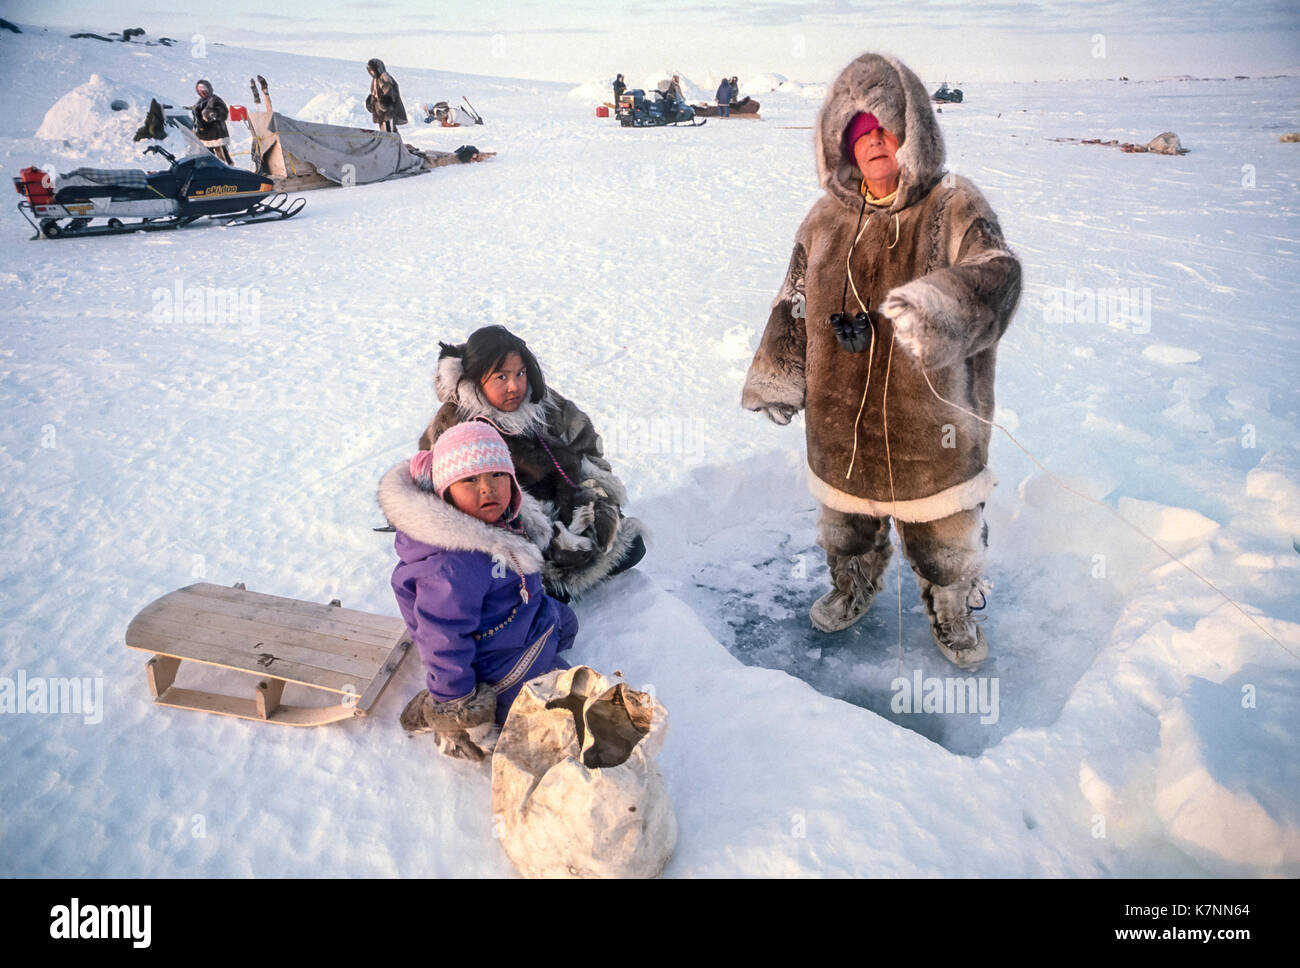 Inuit girls, ages 4 and 11, along with visitor, by fishing hole. Everyone except the younger girl, including other visitors and Inuit elders in background, are dressed in traditional caribou skin clothing. Outside Baker Lake, Nunavut, Canada. - Stock Image